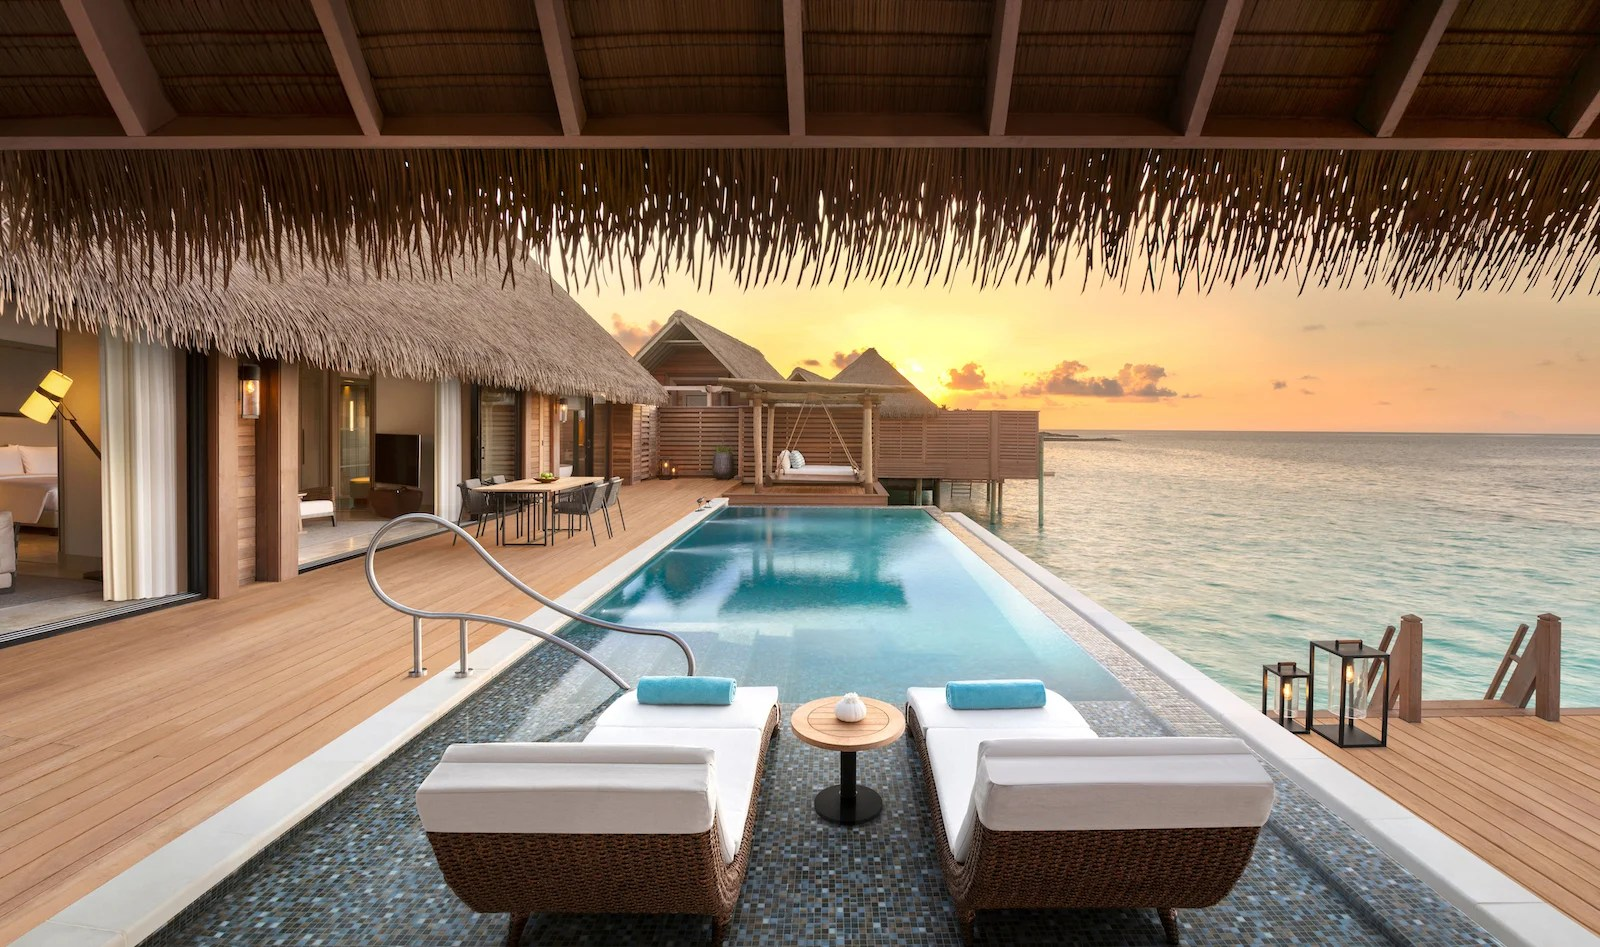 This luxurious Maldives resort has an on-site doctor and free COVID tests